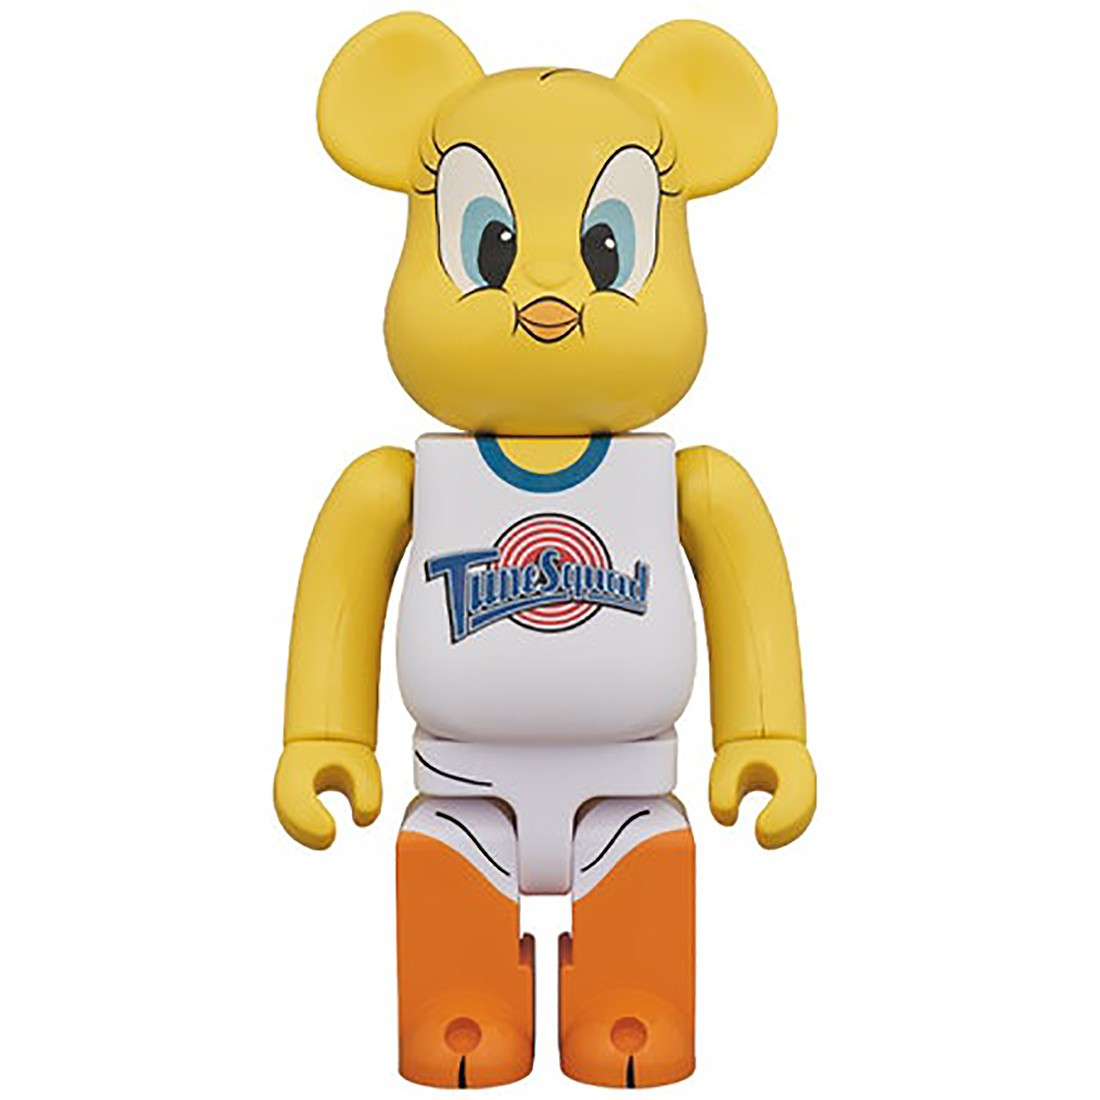 PREORDER - Medicom x Space Jam Tweety 400% Bearbrick Figure (yellow)